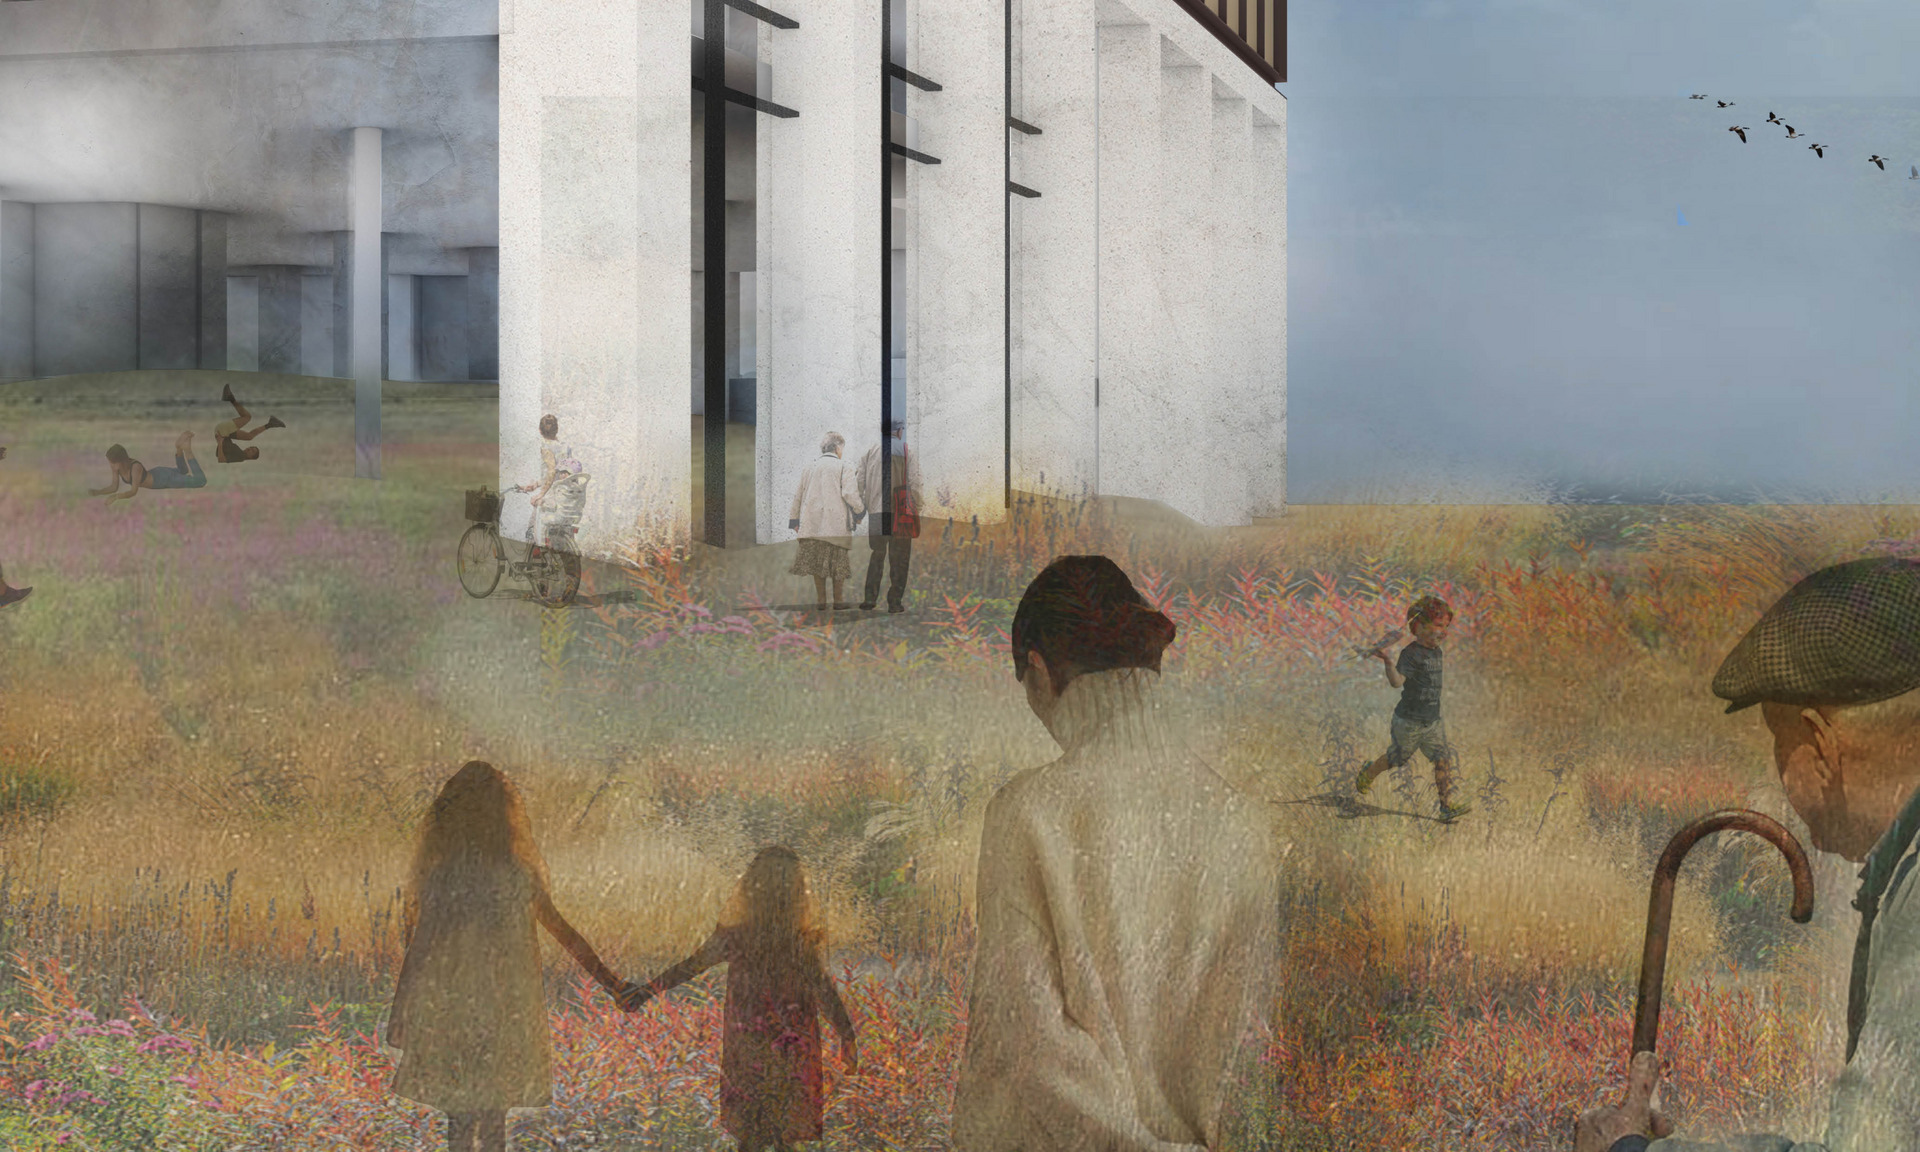 An extension of Camley Street Natural park, a space to reach wider, a space of activism in preventative healthcare